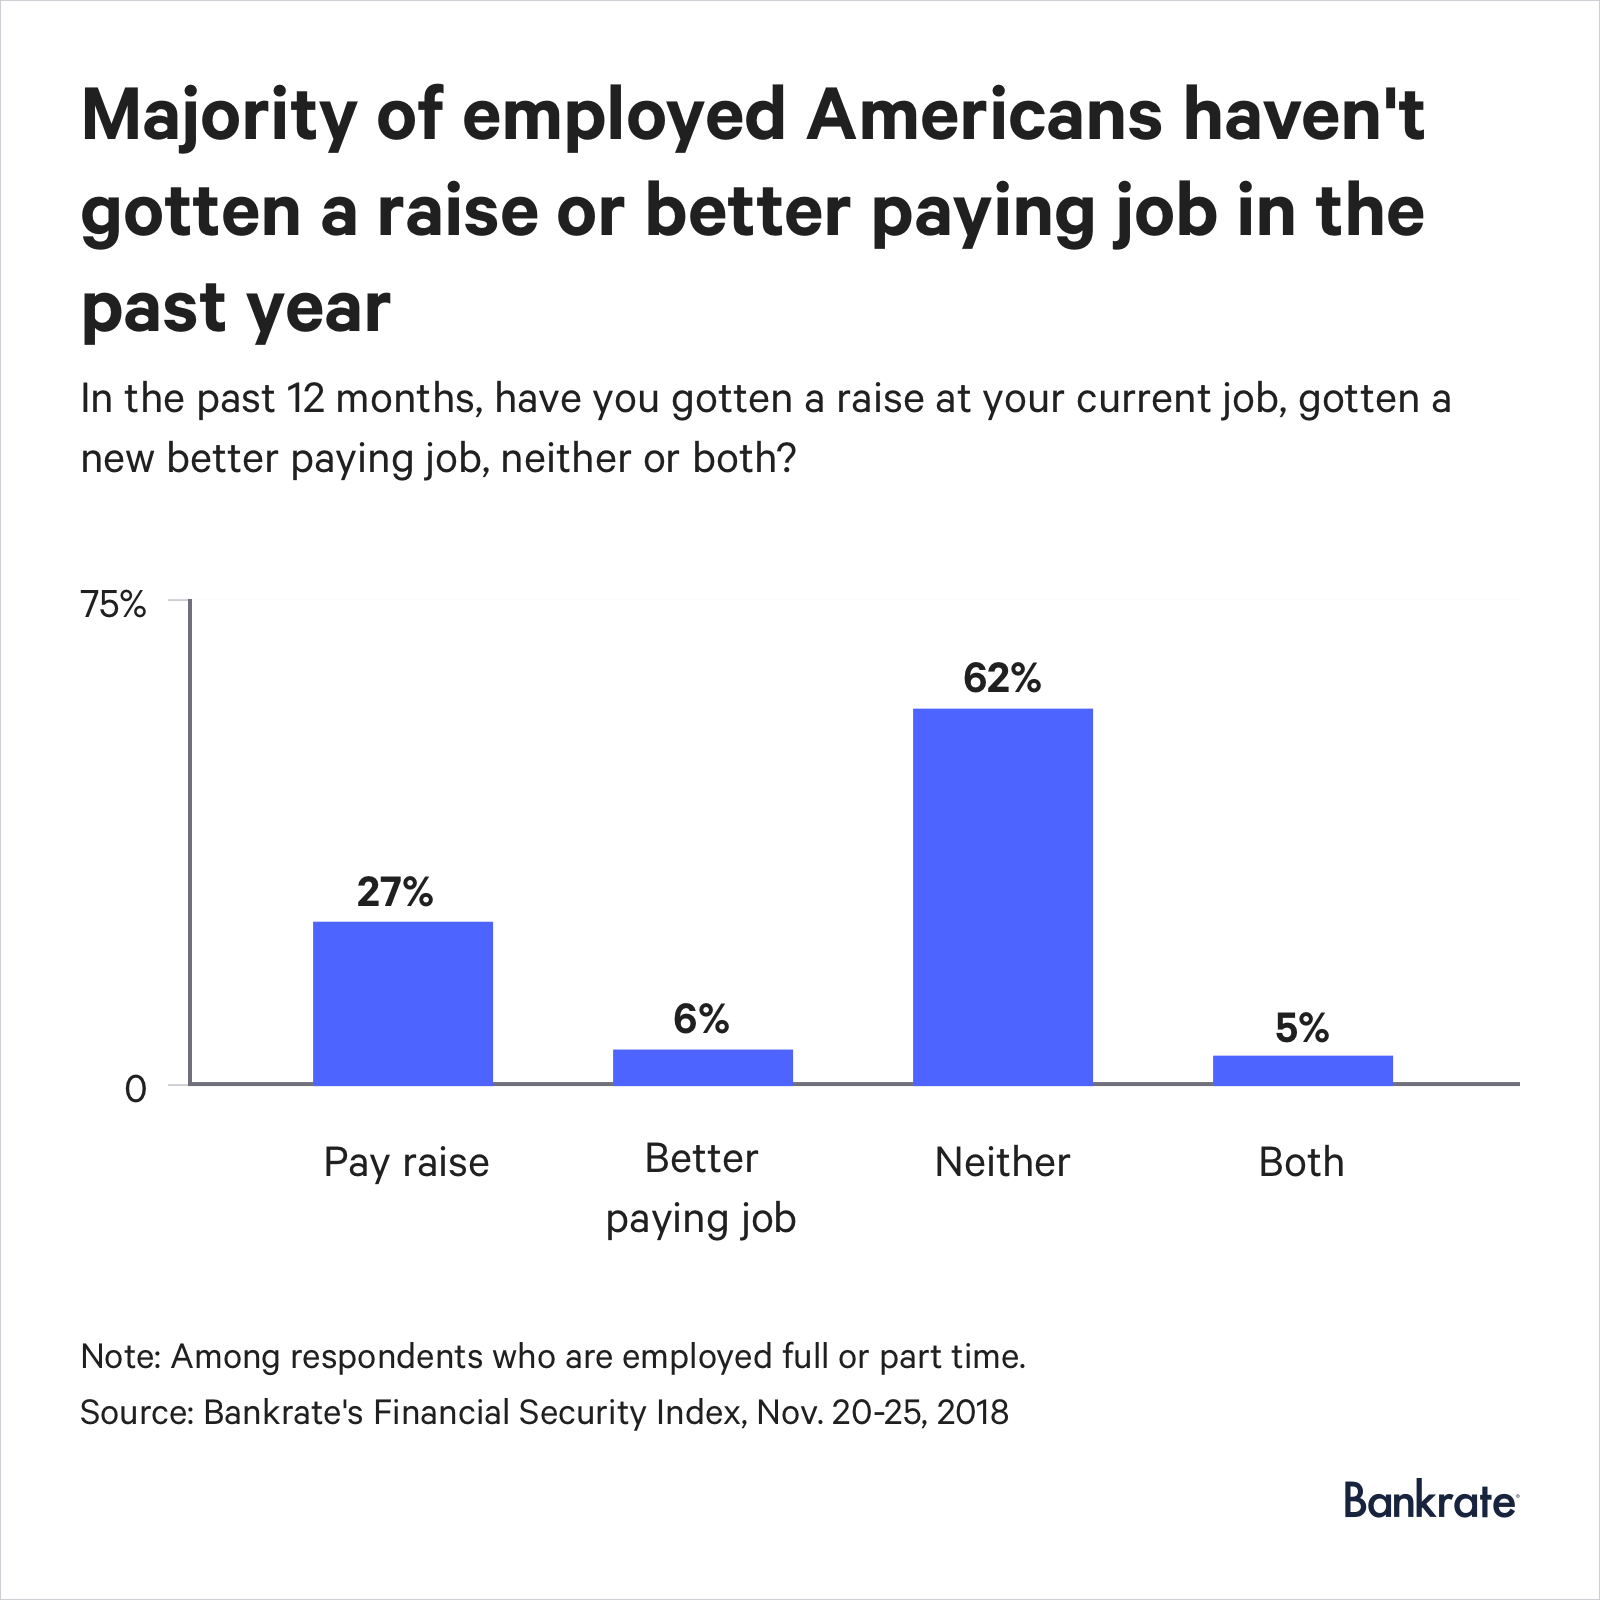 62% of Americans neither got a raise or a better paying job